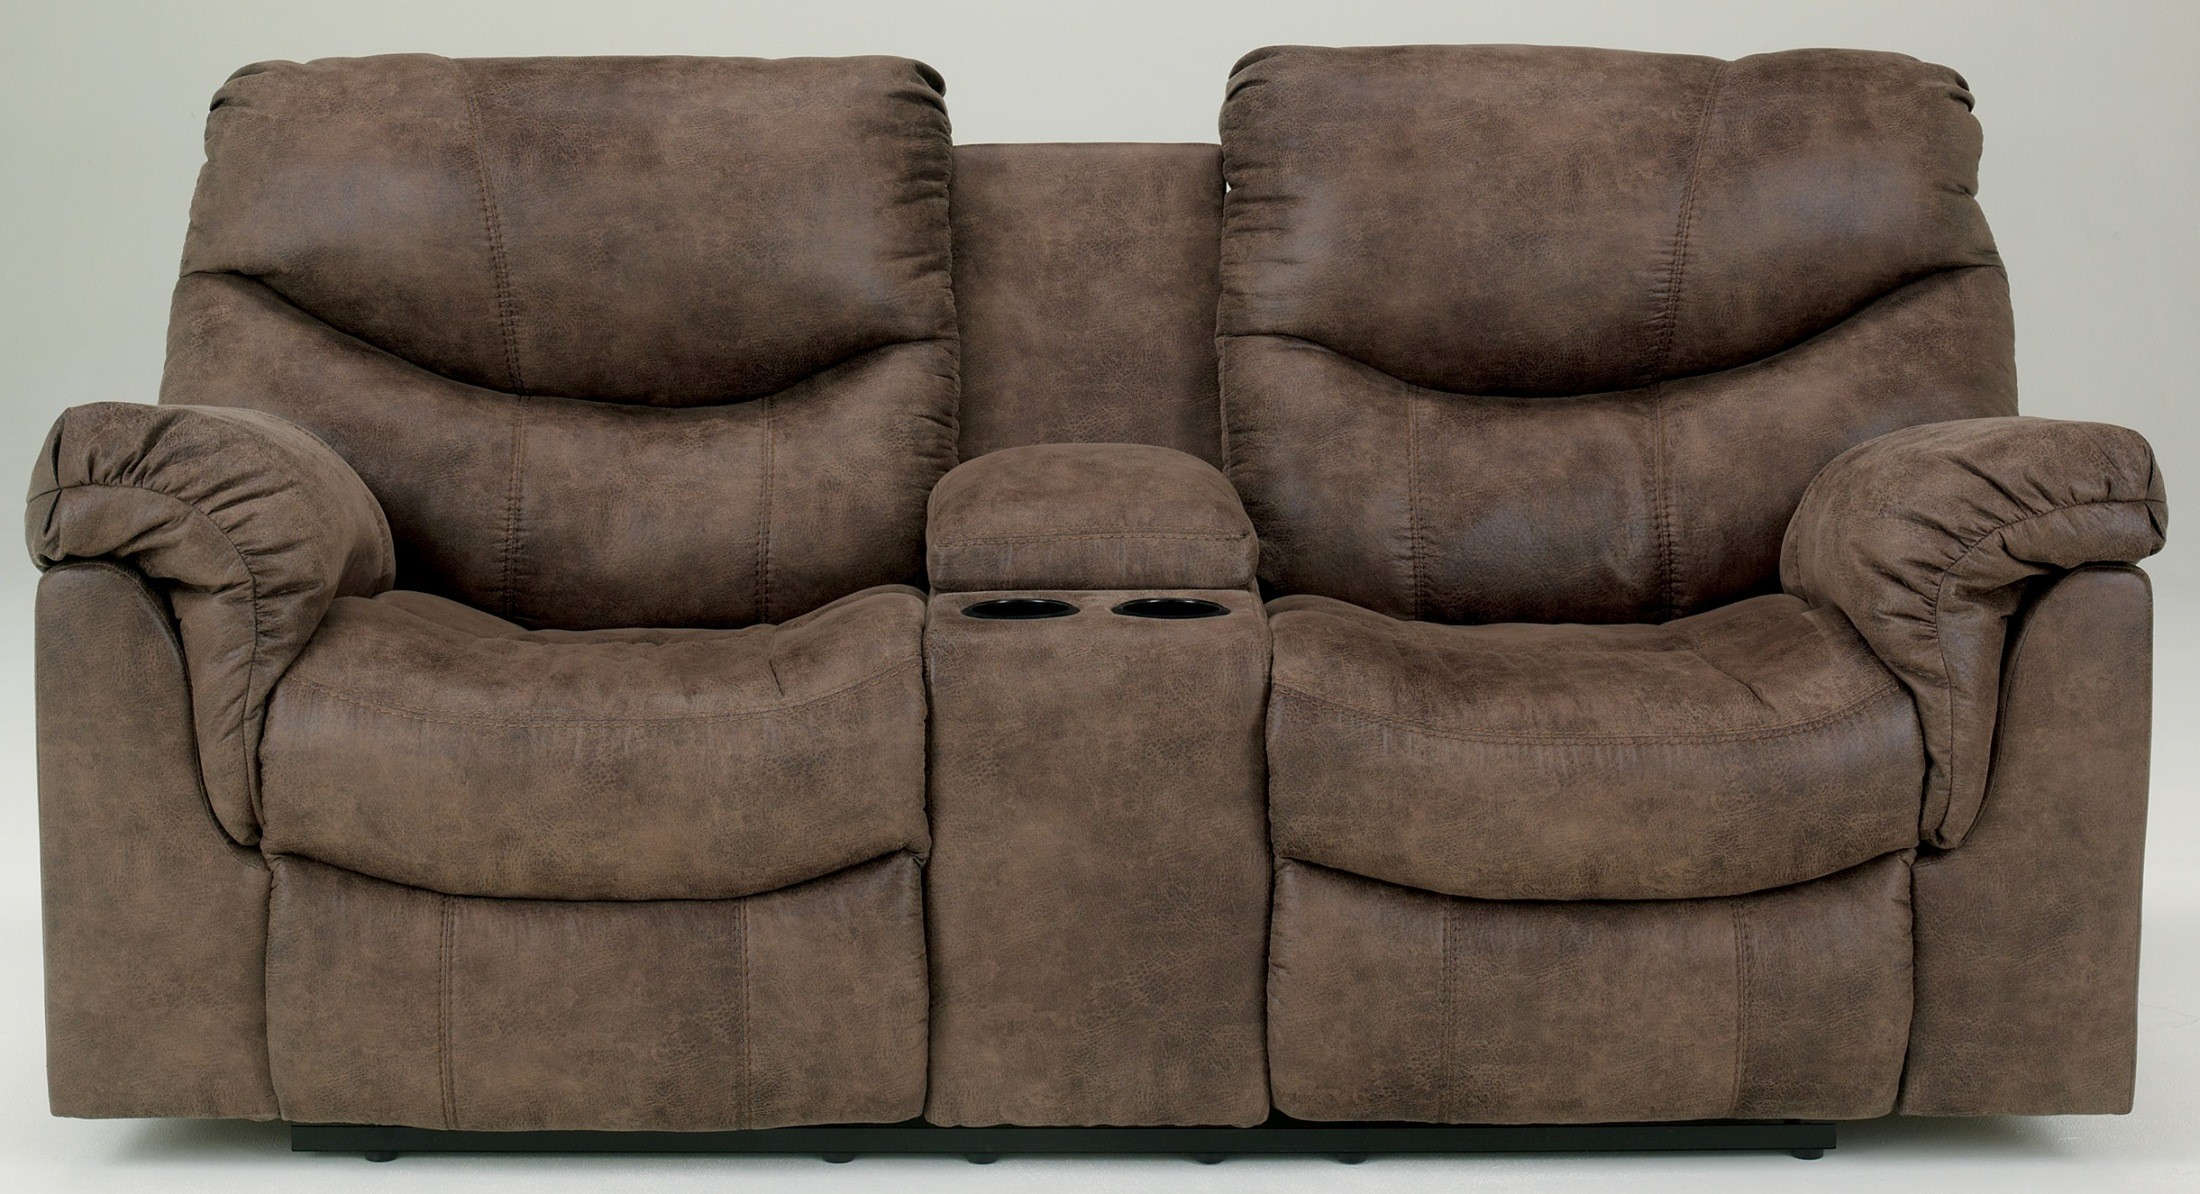 241914 & Alzena Double Reclining Loveseat with Console from Ashley (7140094 ... islam-shia.org